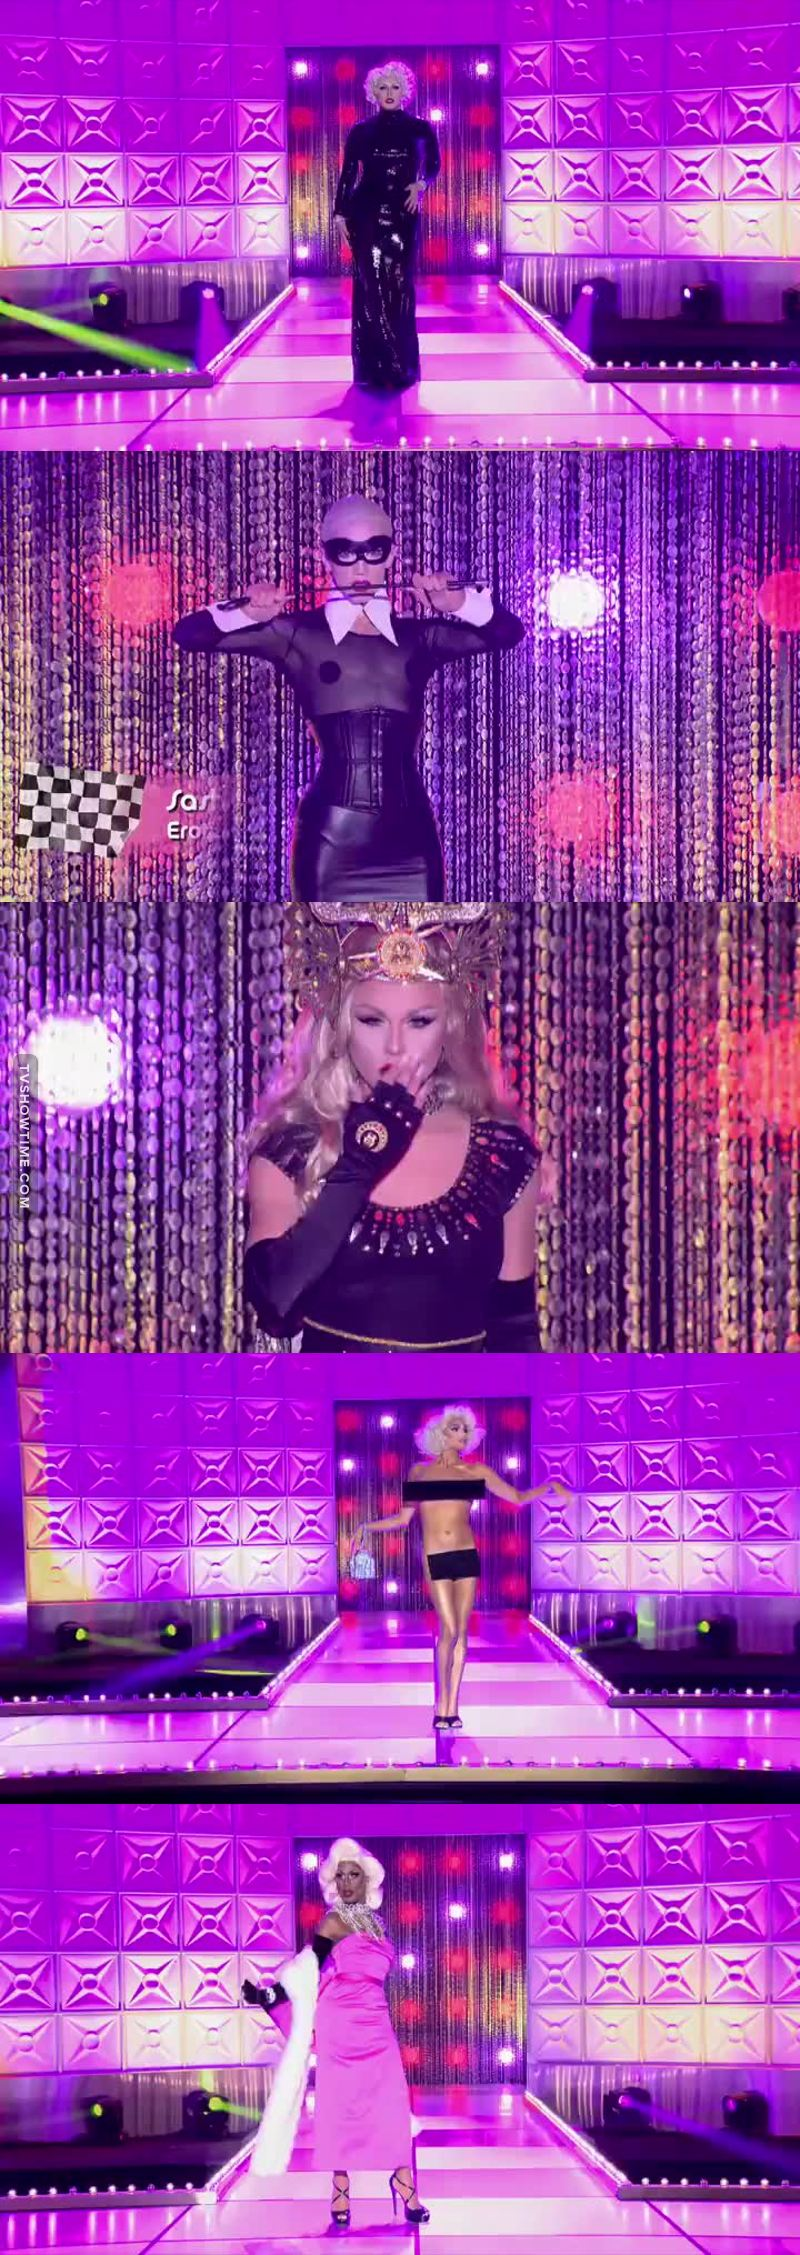 THIS. IS. A. MADONNA. RUNWAY. THANK YOU!